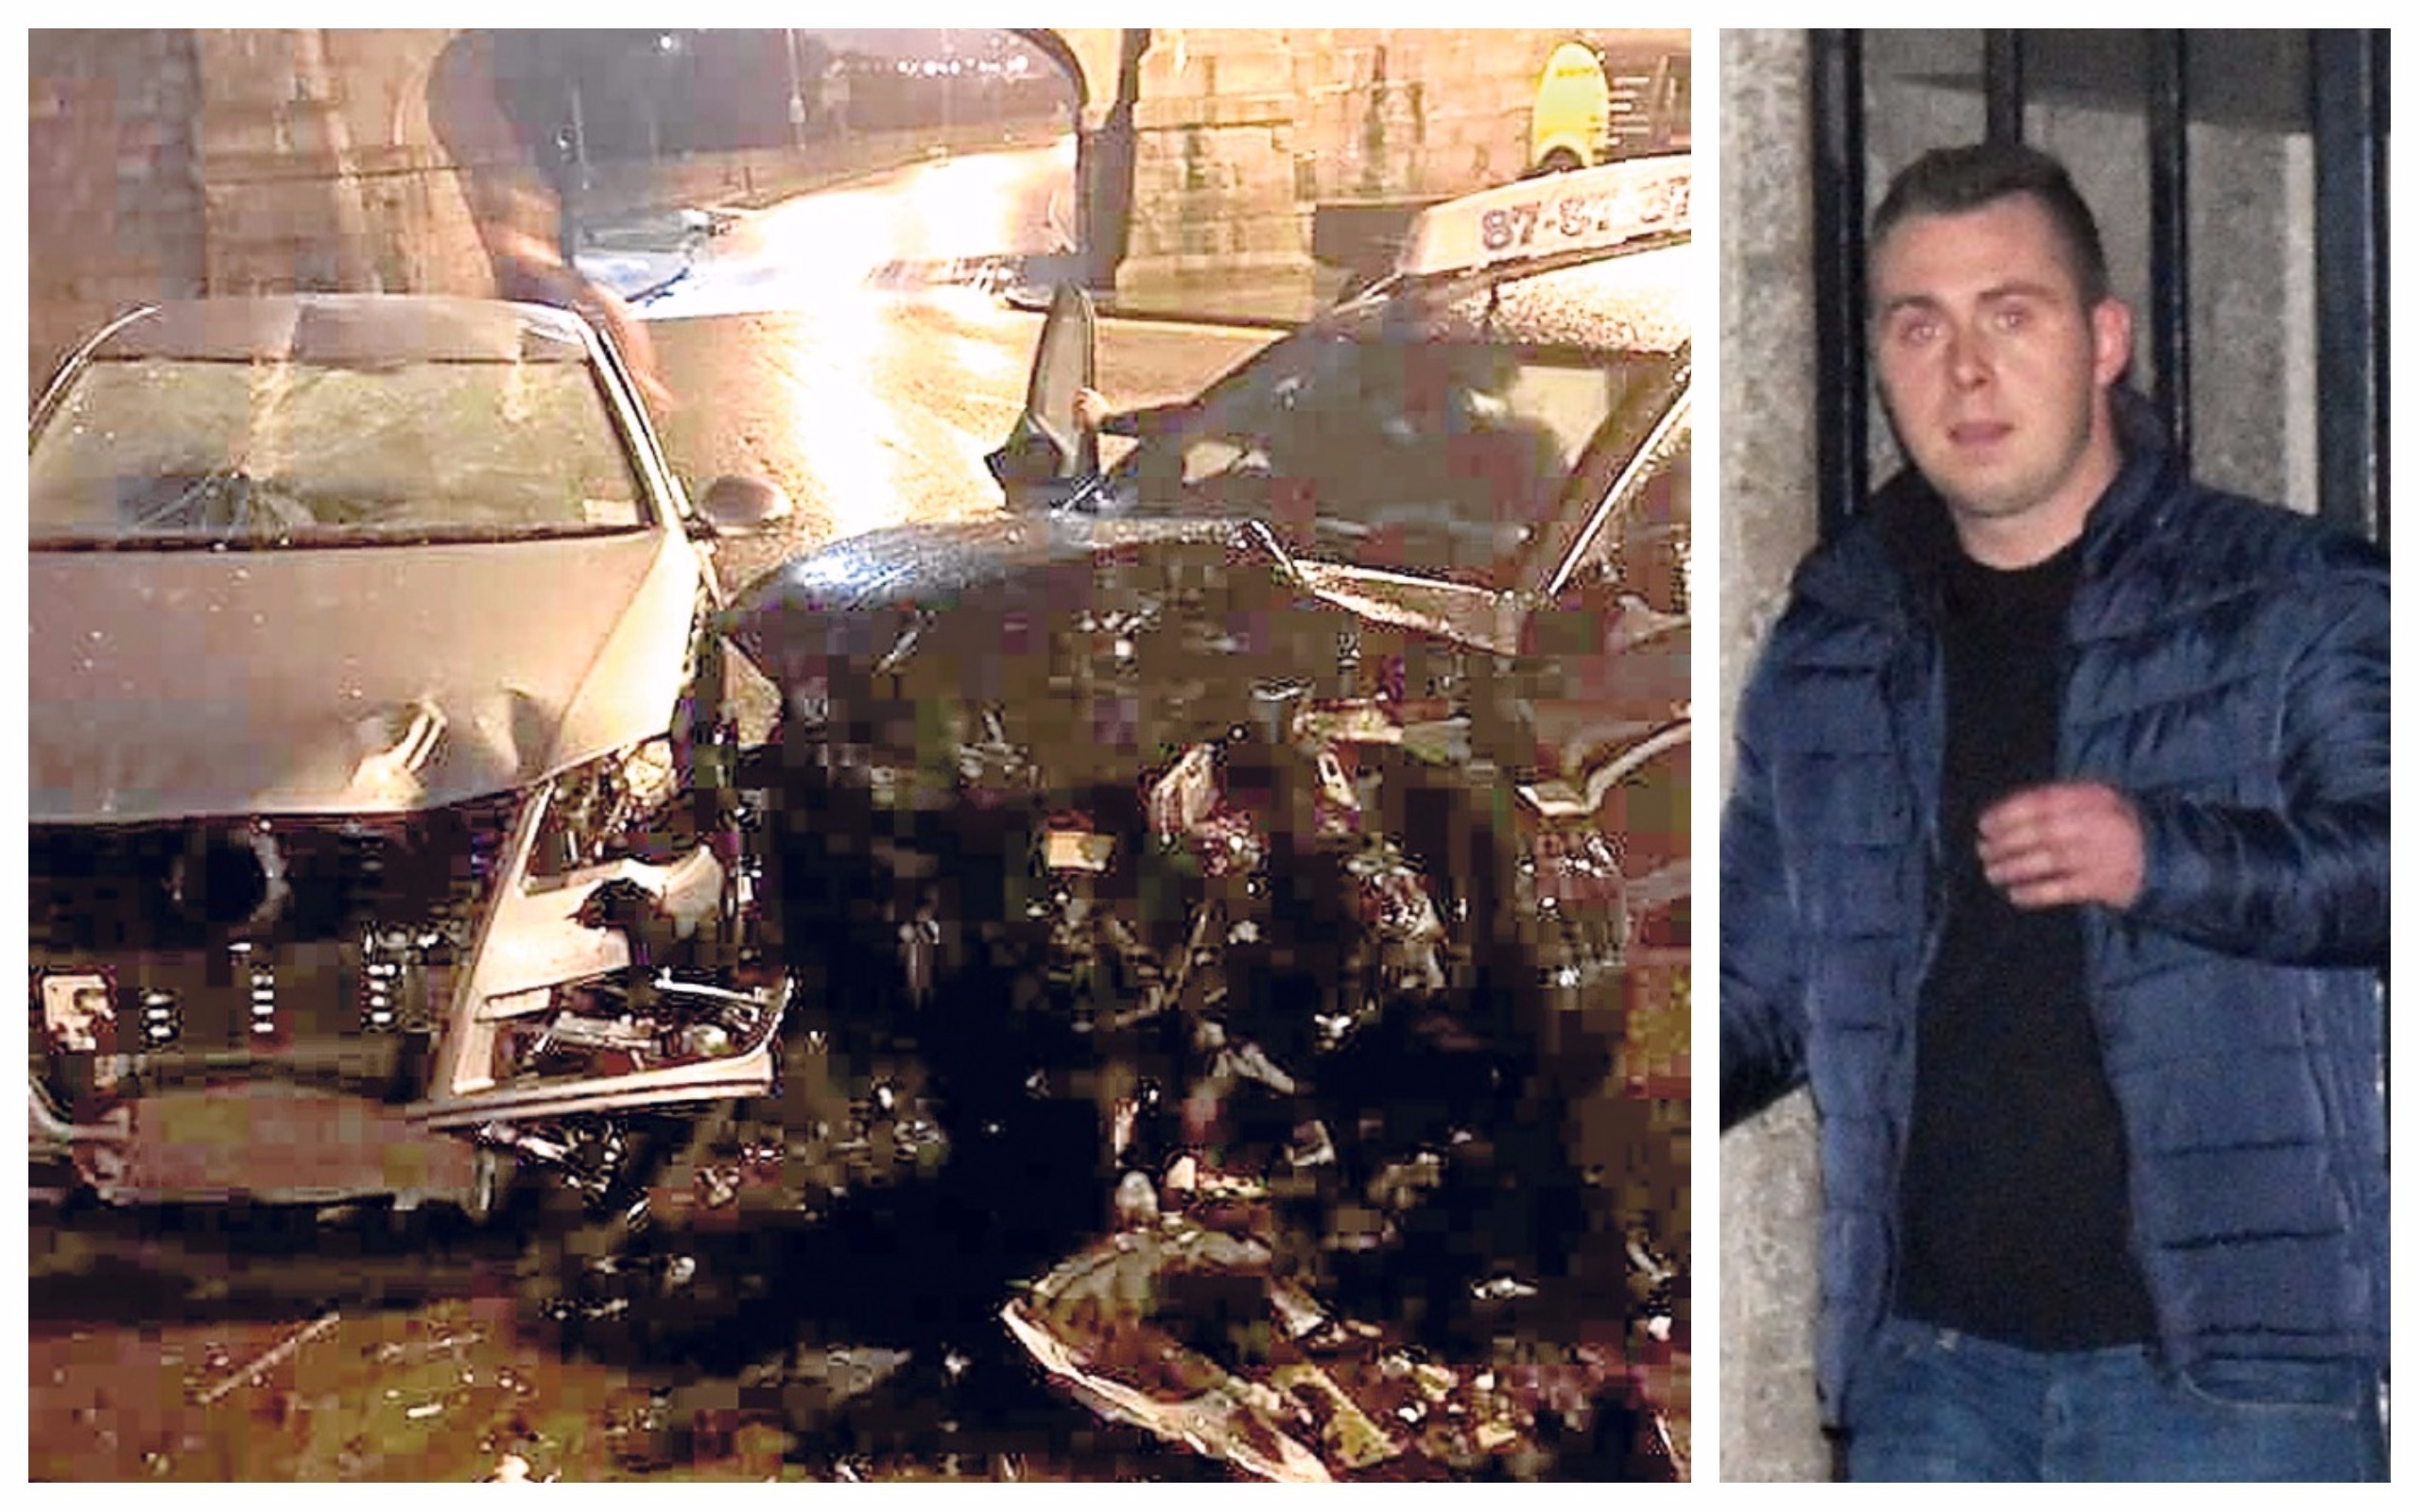 Kamil Patora had been drinking on December 31 before getting behind the wheel while more than three times the limit.